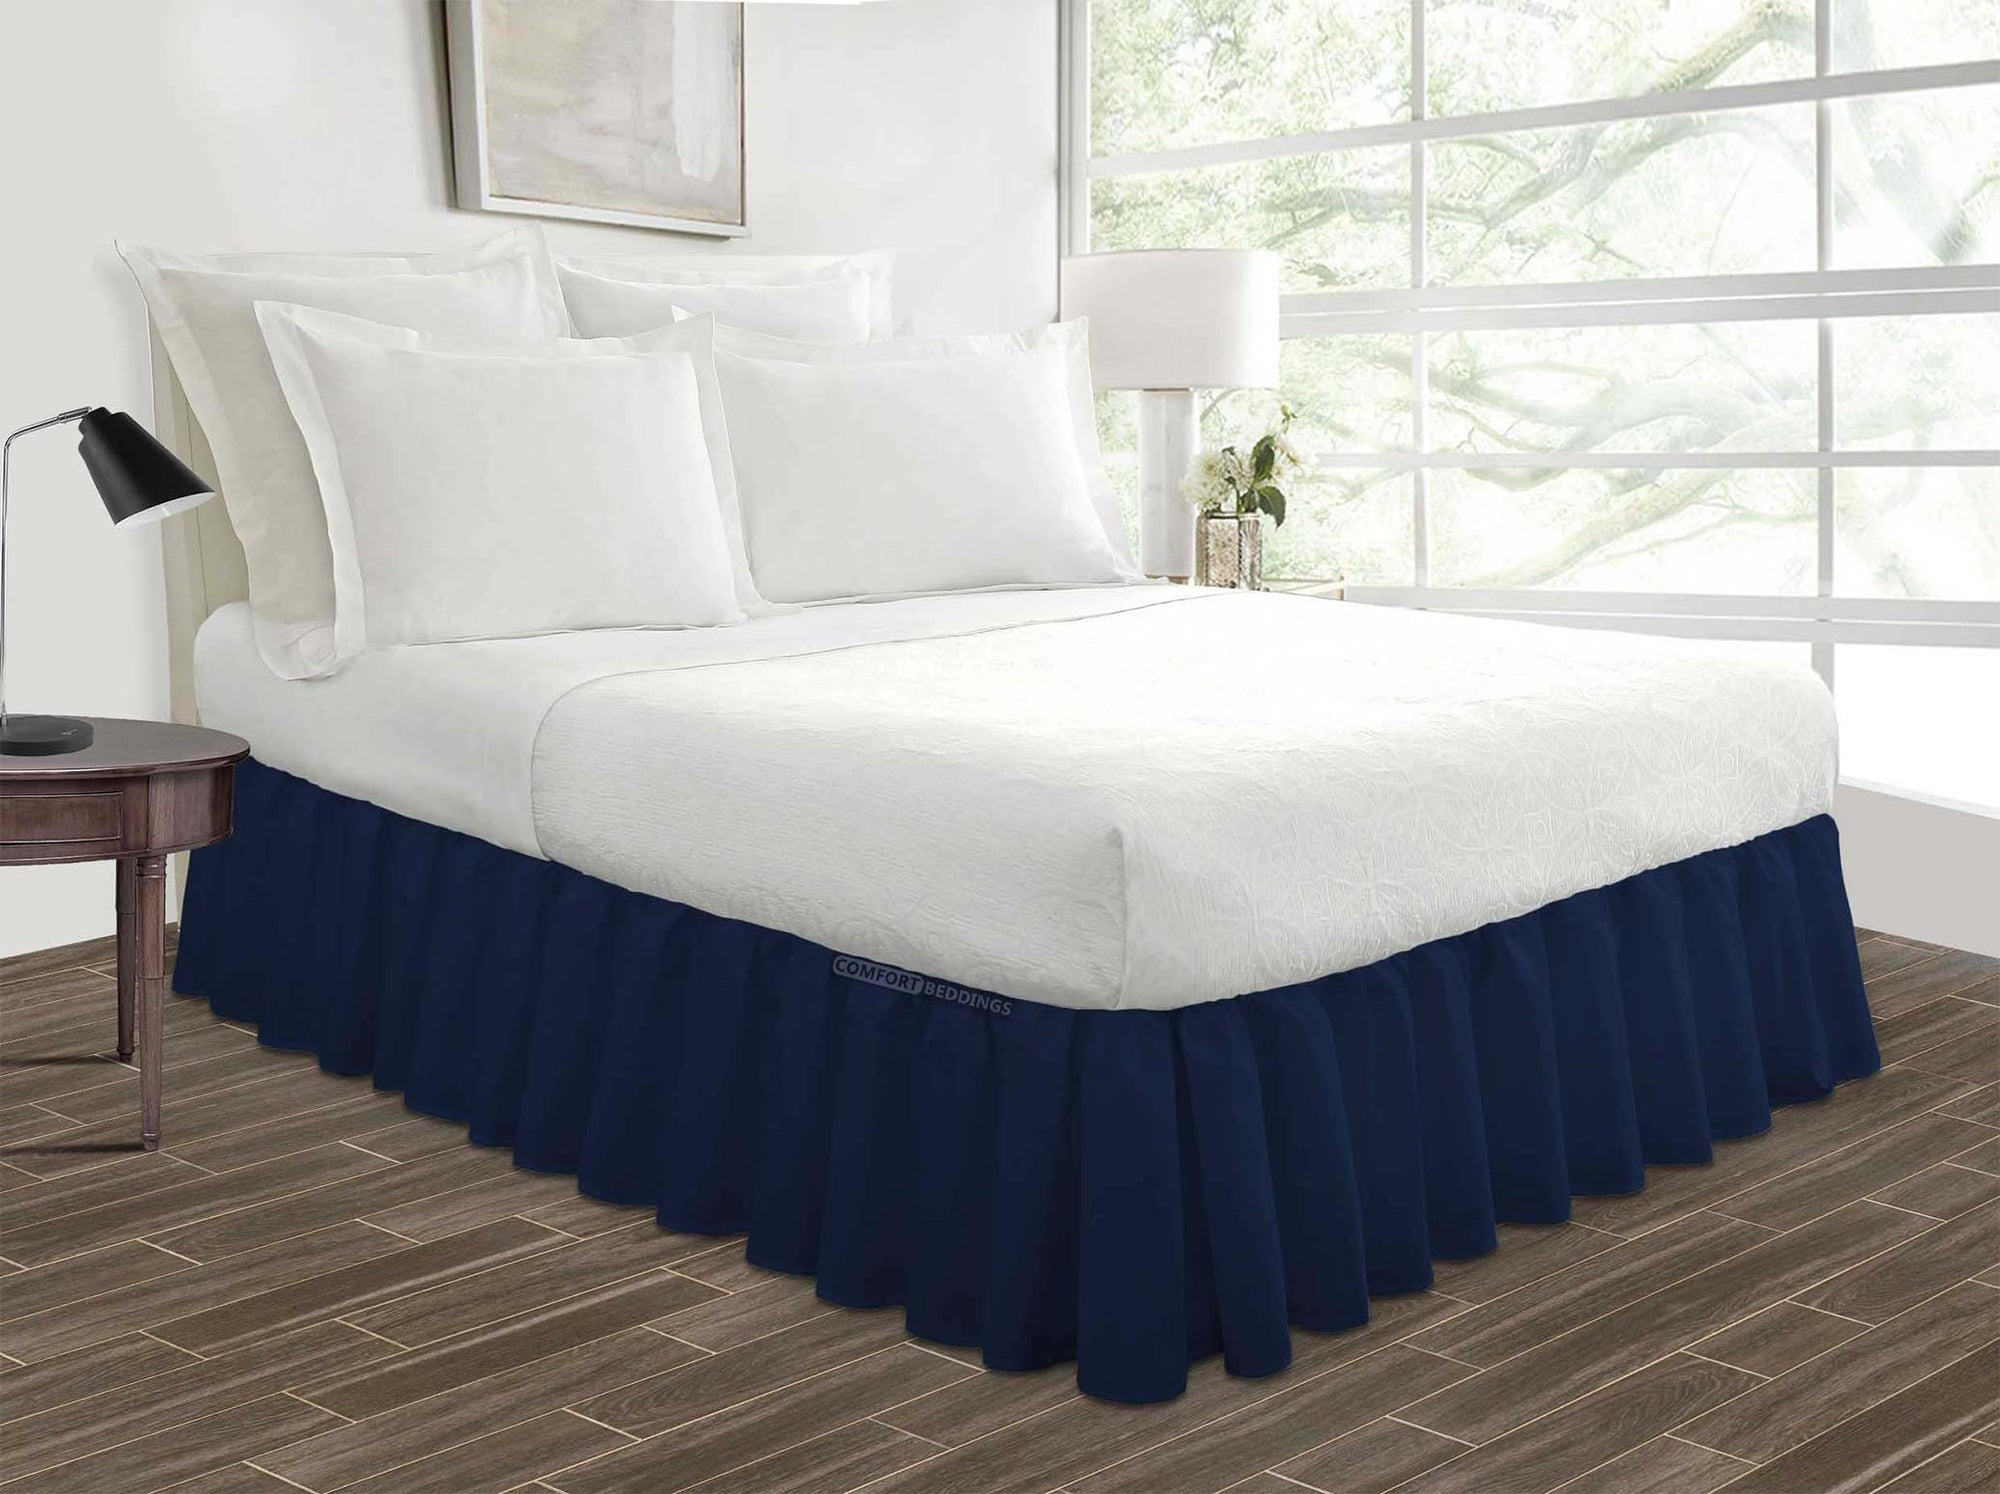 Luxury Navy Blue Ruffled Bed Skirt